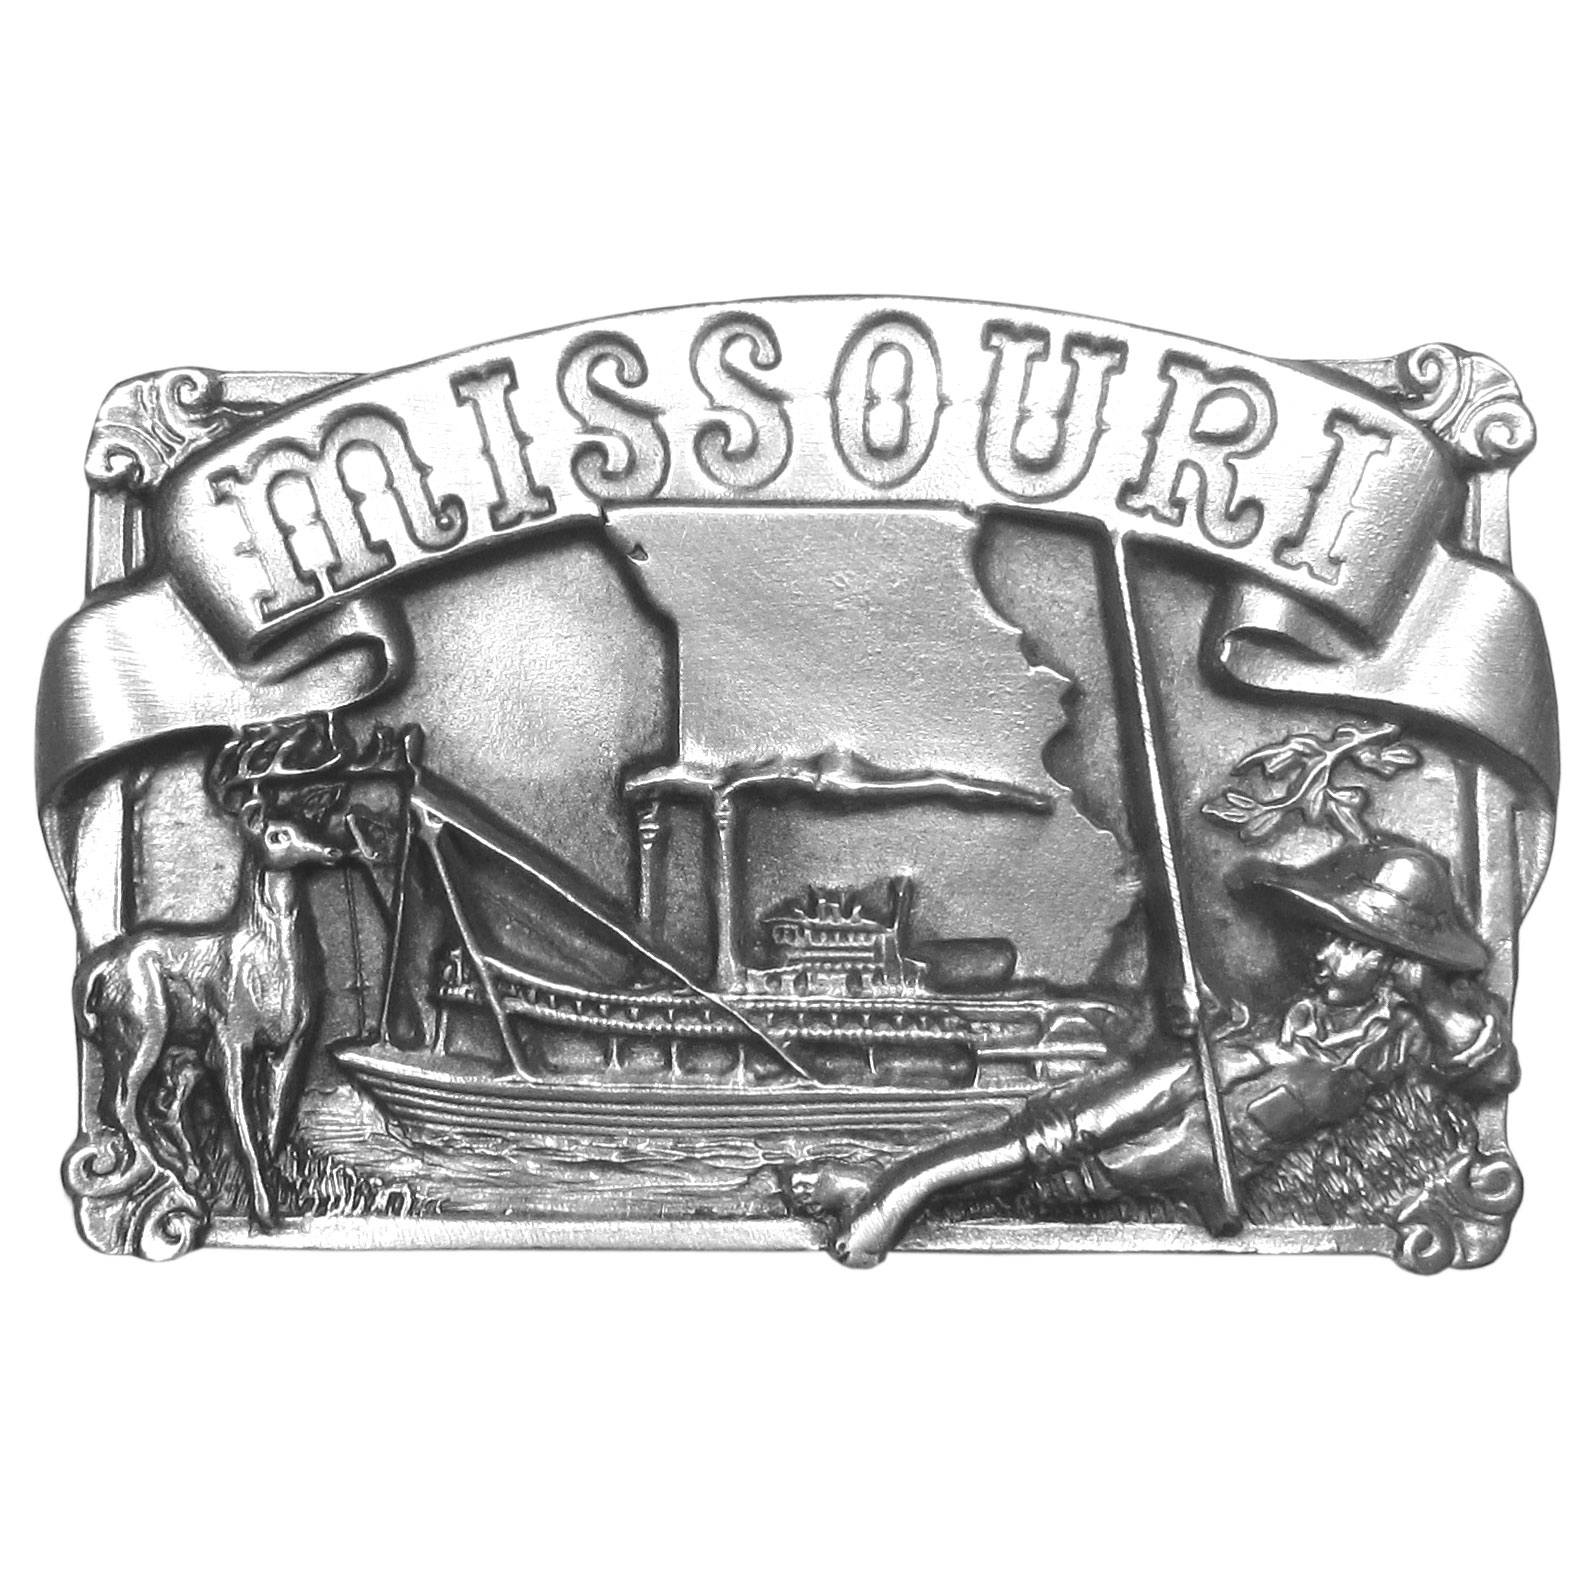 "Missouri Antiqued Belt Buckle - ""This buckle is inspired by the state of Missouri. """"Missouri"""" is proudly written on a banner on the top of the buckle. Below the banner is an outline of the state of missouri, a steamboat on the Mississippi River, a Huck Finn looking character laying beside the river with bare feet and a deer with antlers. This exquistely carved buckle is made of fully cast metal with a standard bale that fits up to 2"""" belts. Siskiyou's unique buckle designs often become collectors items and are unequaled with the best craftsmanship."""